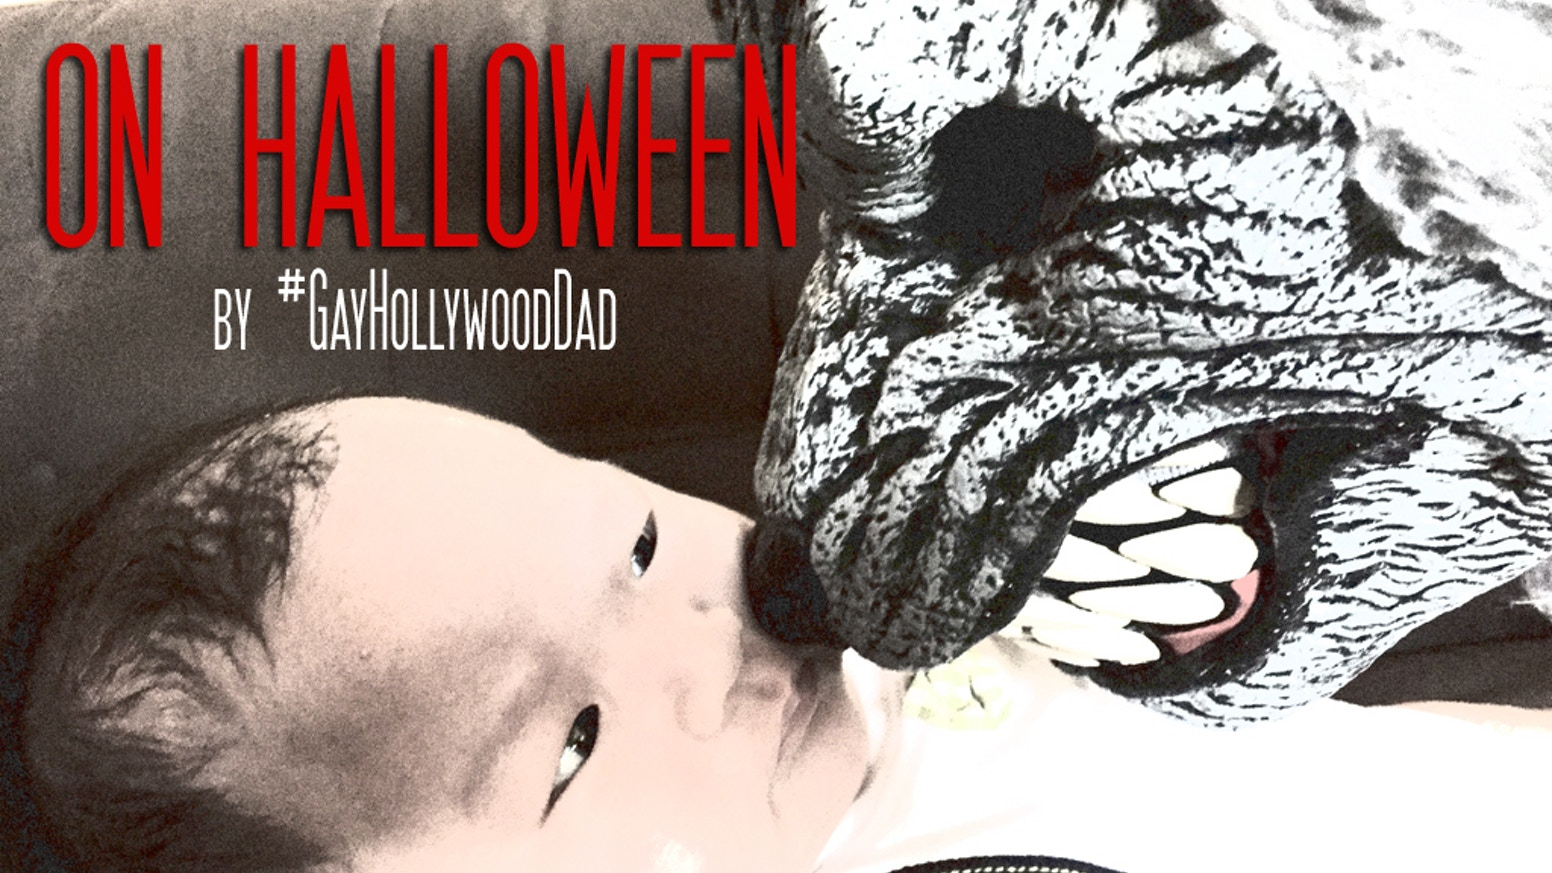 Help Gay Hollywood Dad get his son his first screen credit by making a kickass horror short film to be released this Halloween!